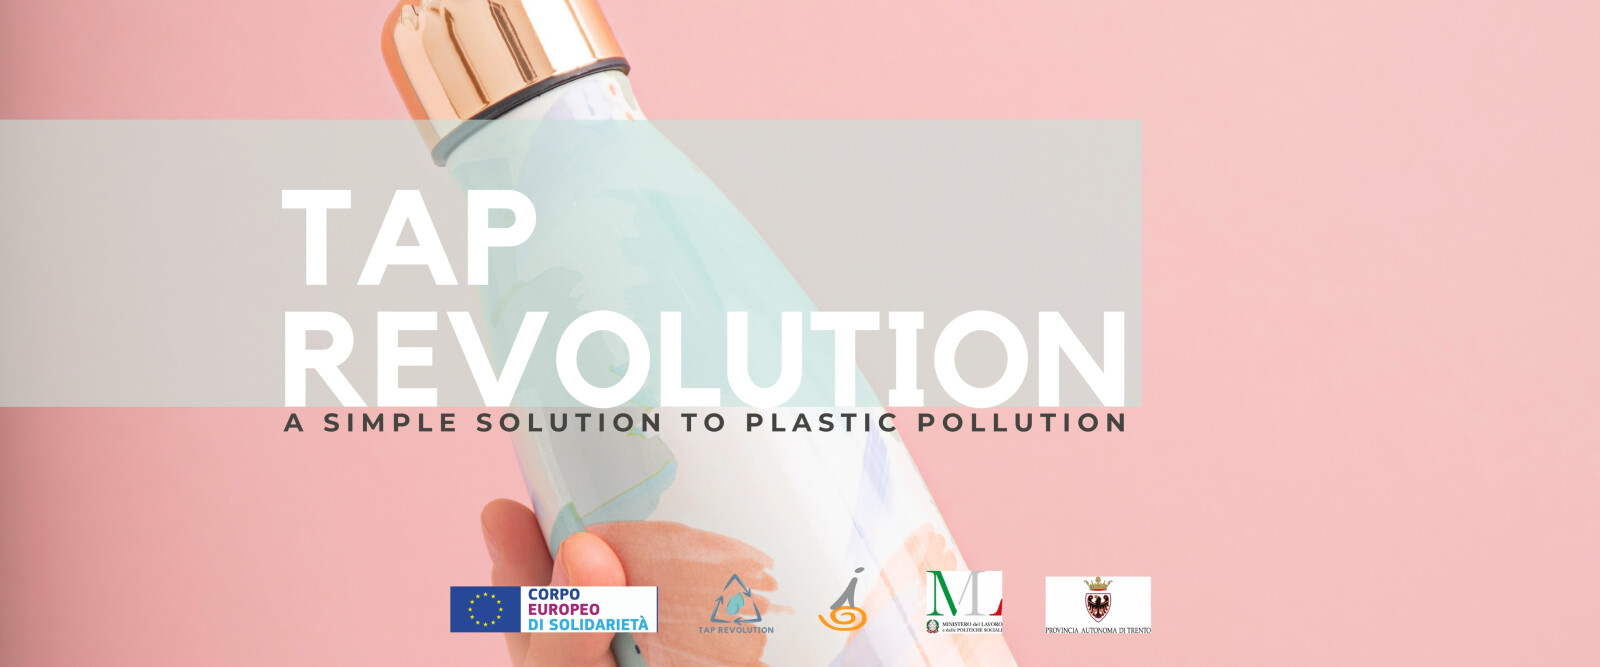 Tap revolution: a simple solution to plastic pollution